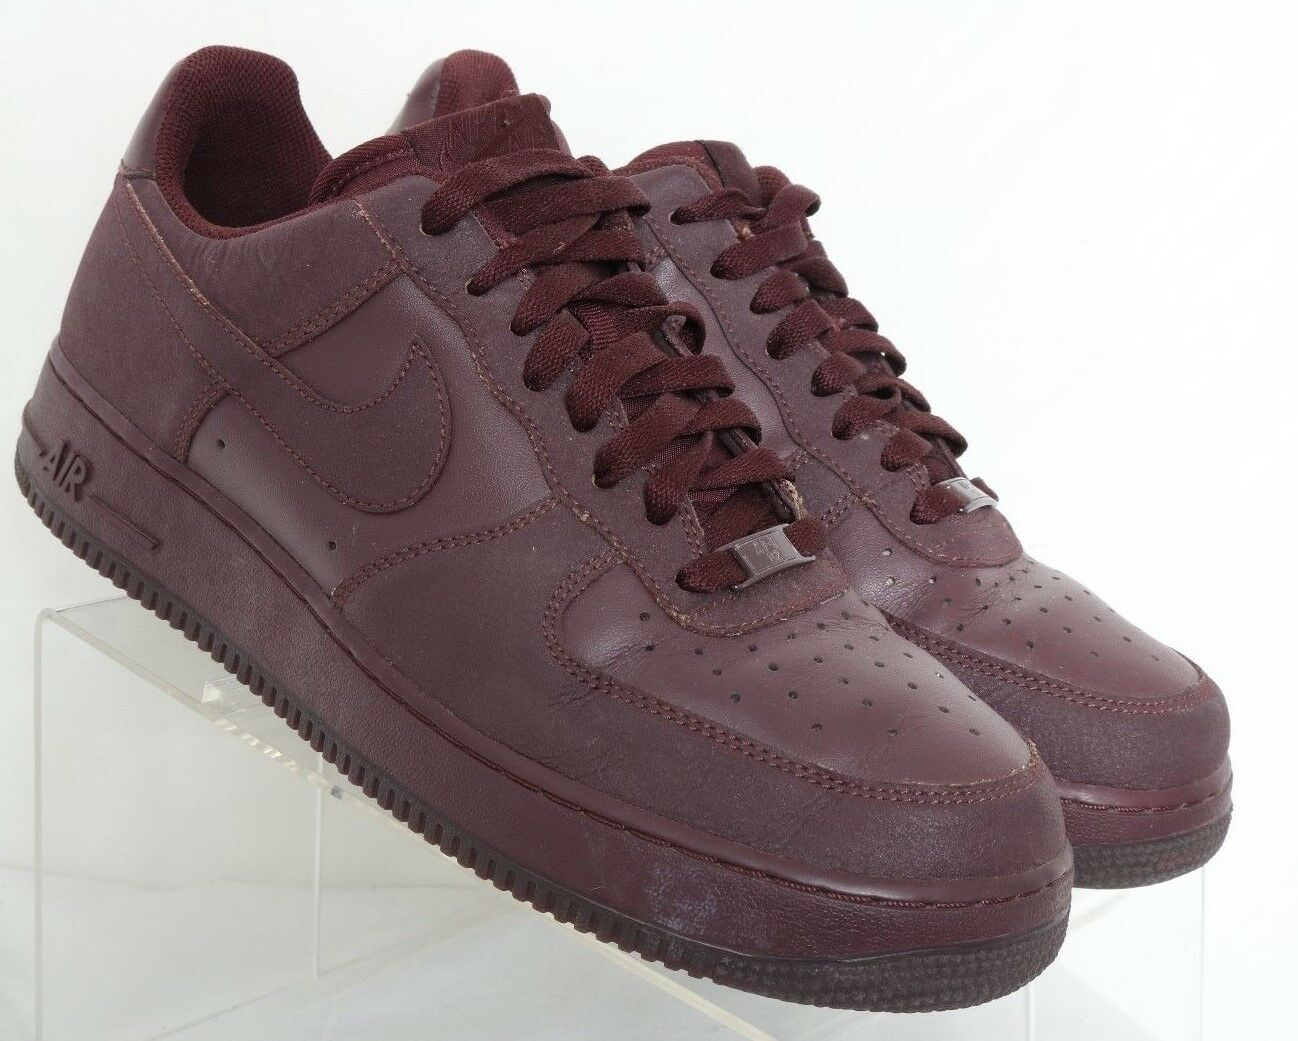 Nike Air Force 1 Tec Tuff Burgundy Athletic Sneaker 315122-605 Men's US 10.5